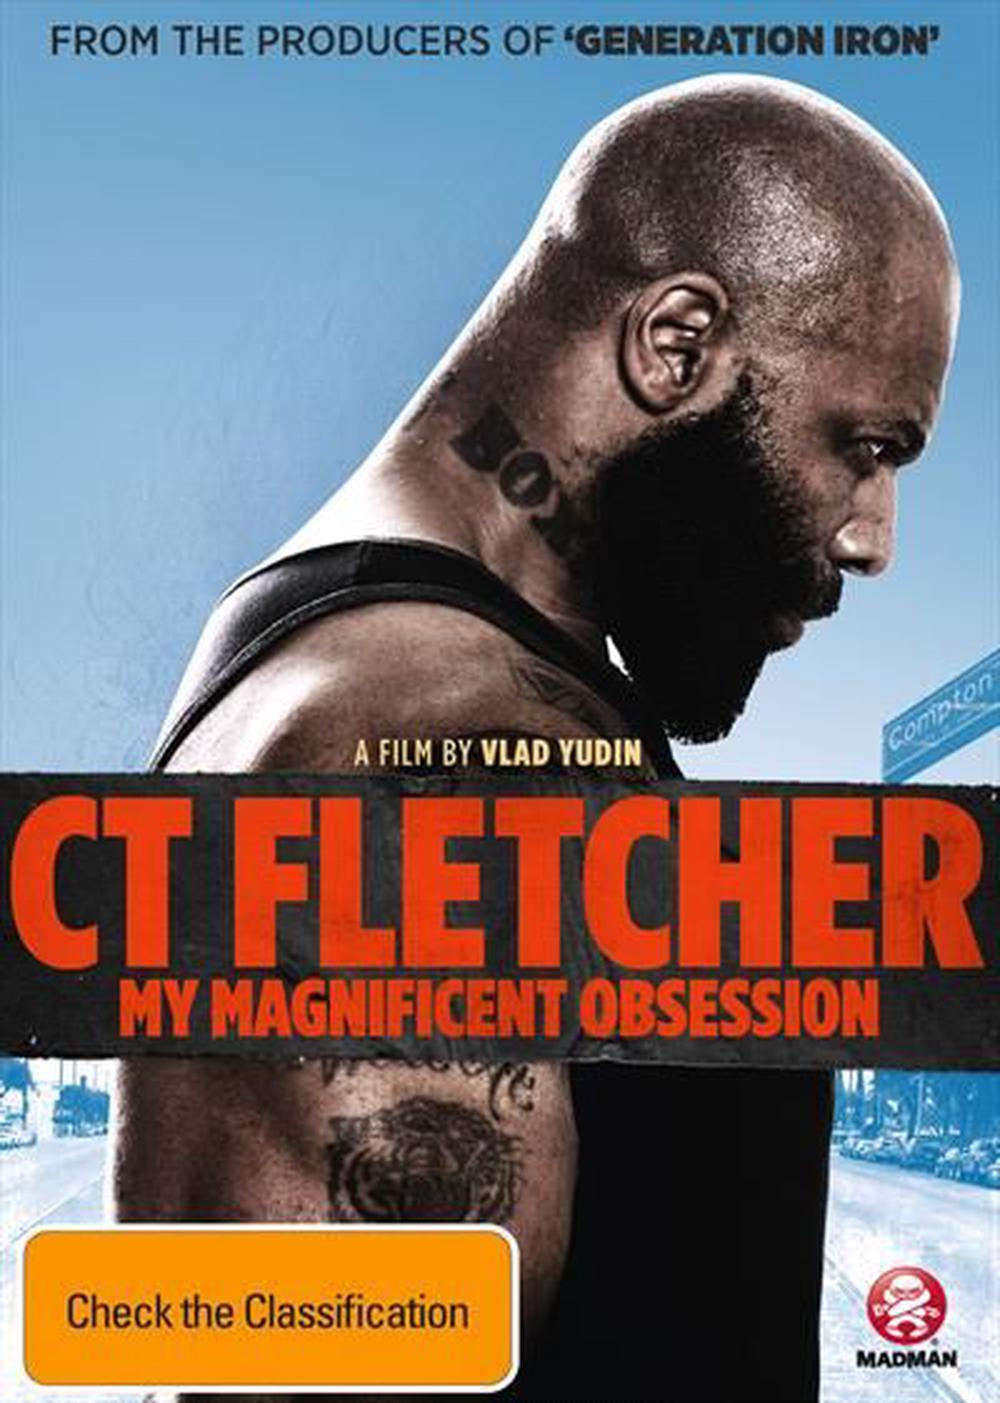 CT Fletcher - My Magnificent Obsession